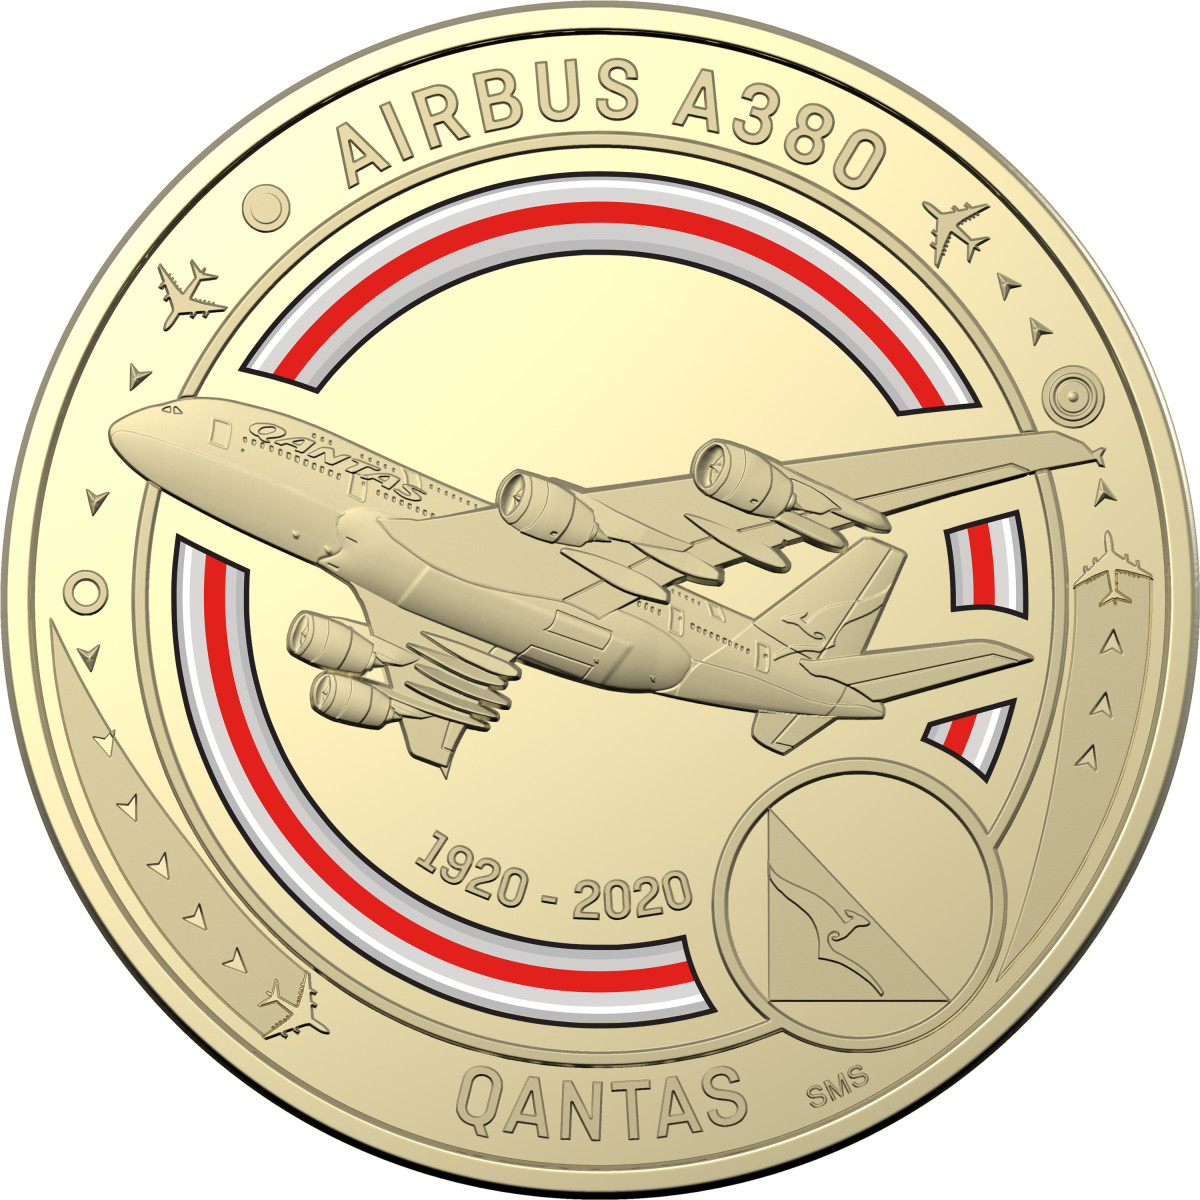 One of the 11 coins featured in the 11-coin set honoring the Qantas Centenary. Image courtesy of the Royal Australian Mint.